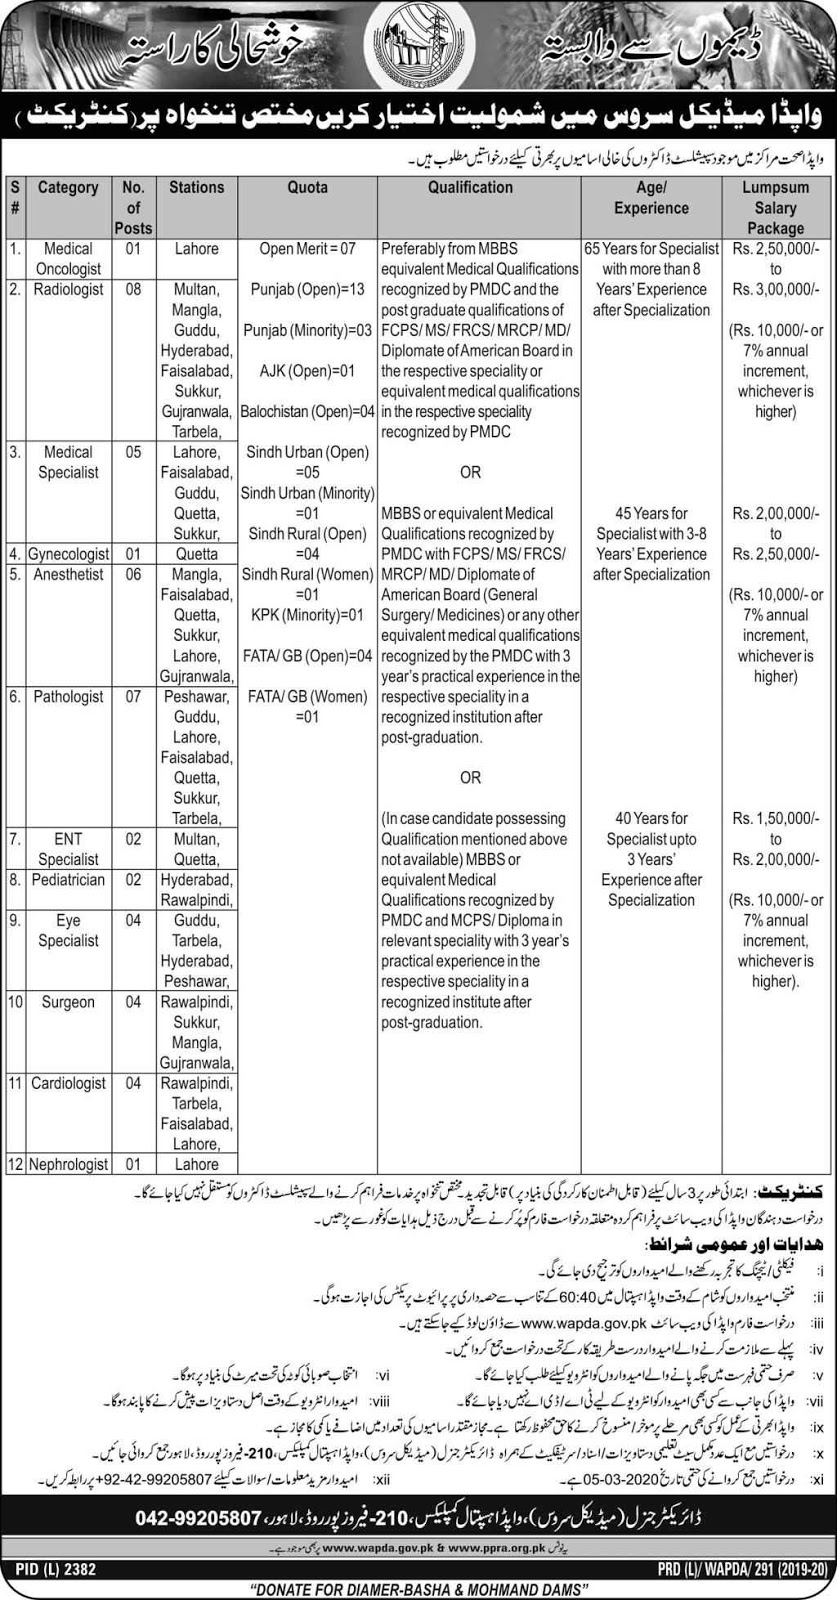 WAPDA Medical Services Jobs 2020 on Contract Base